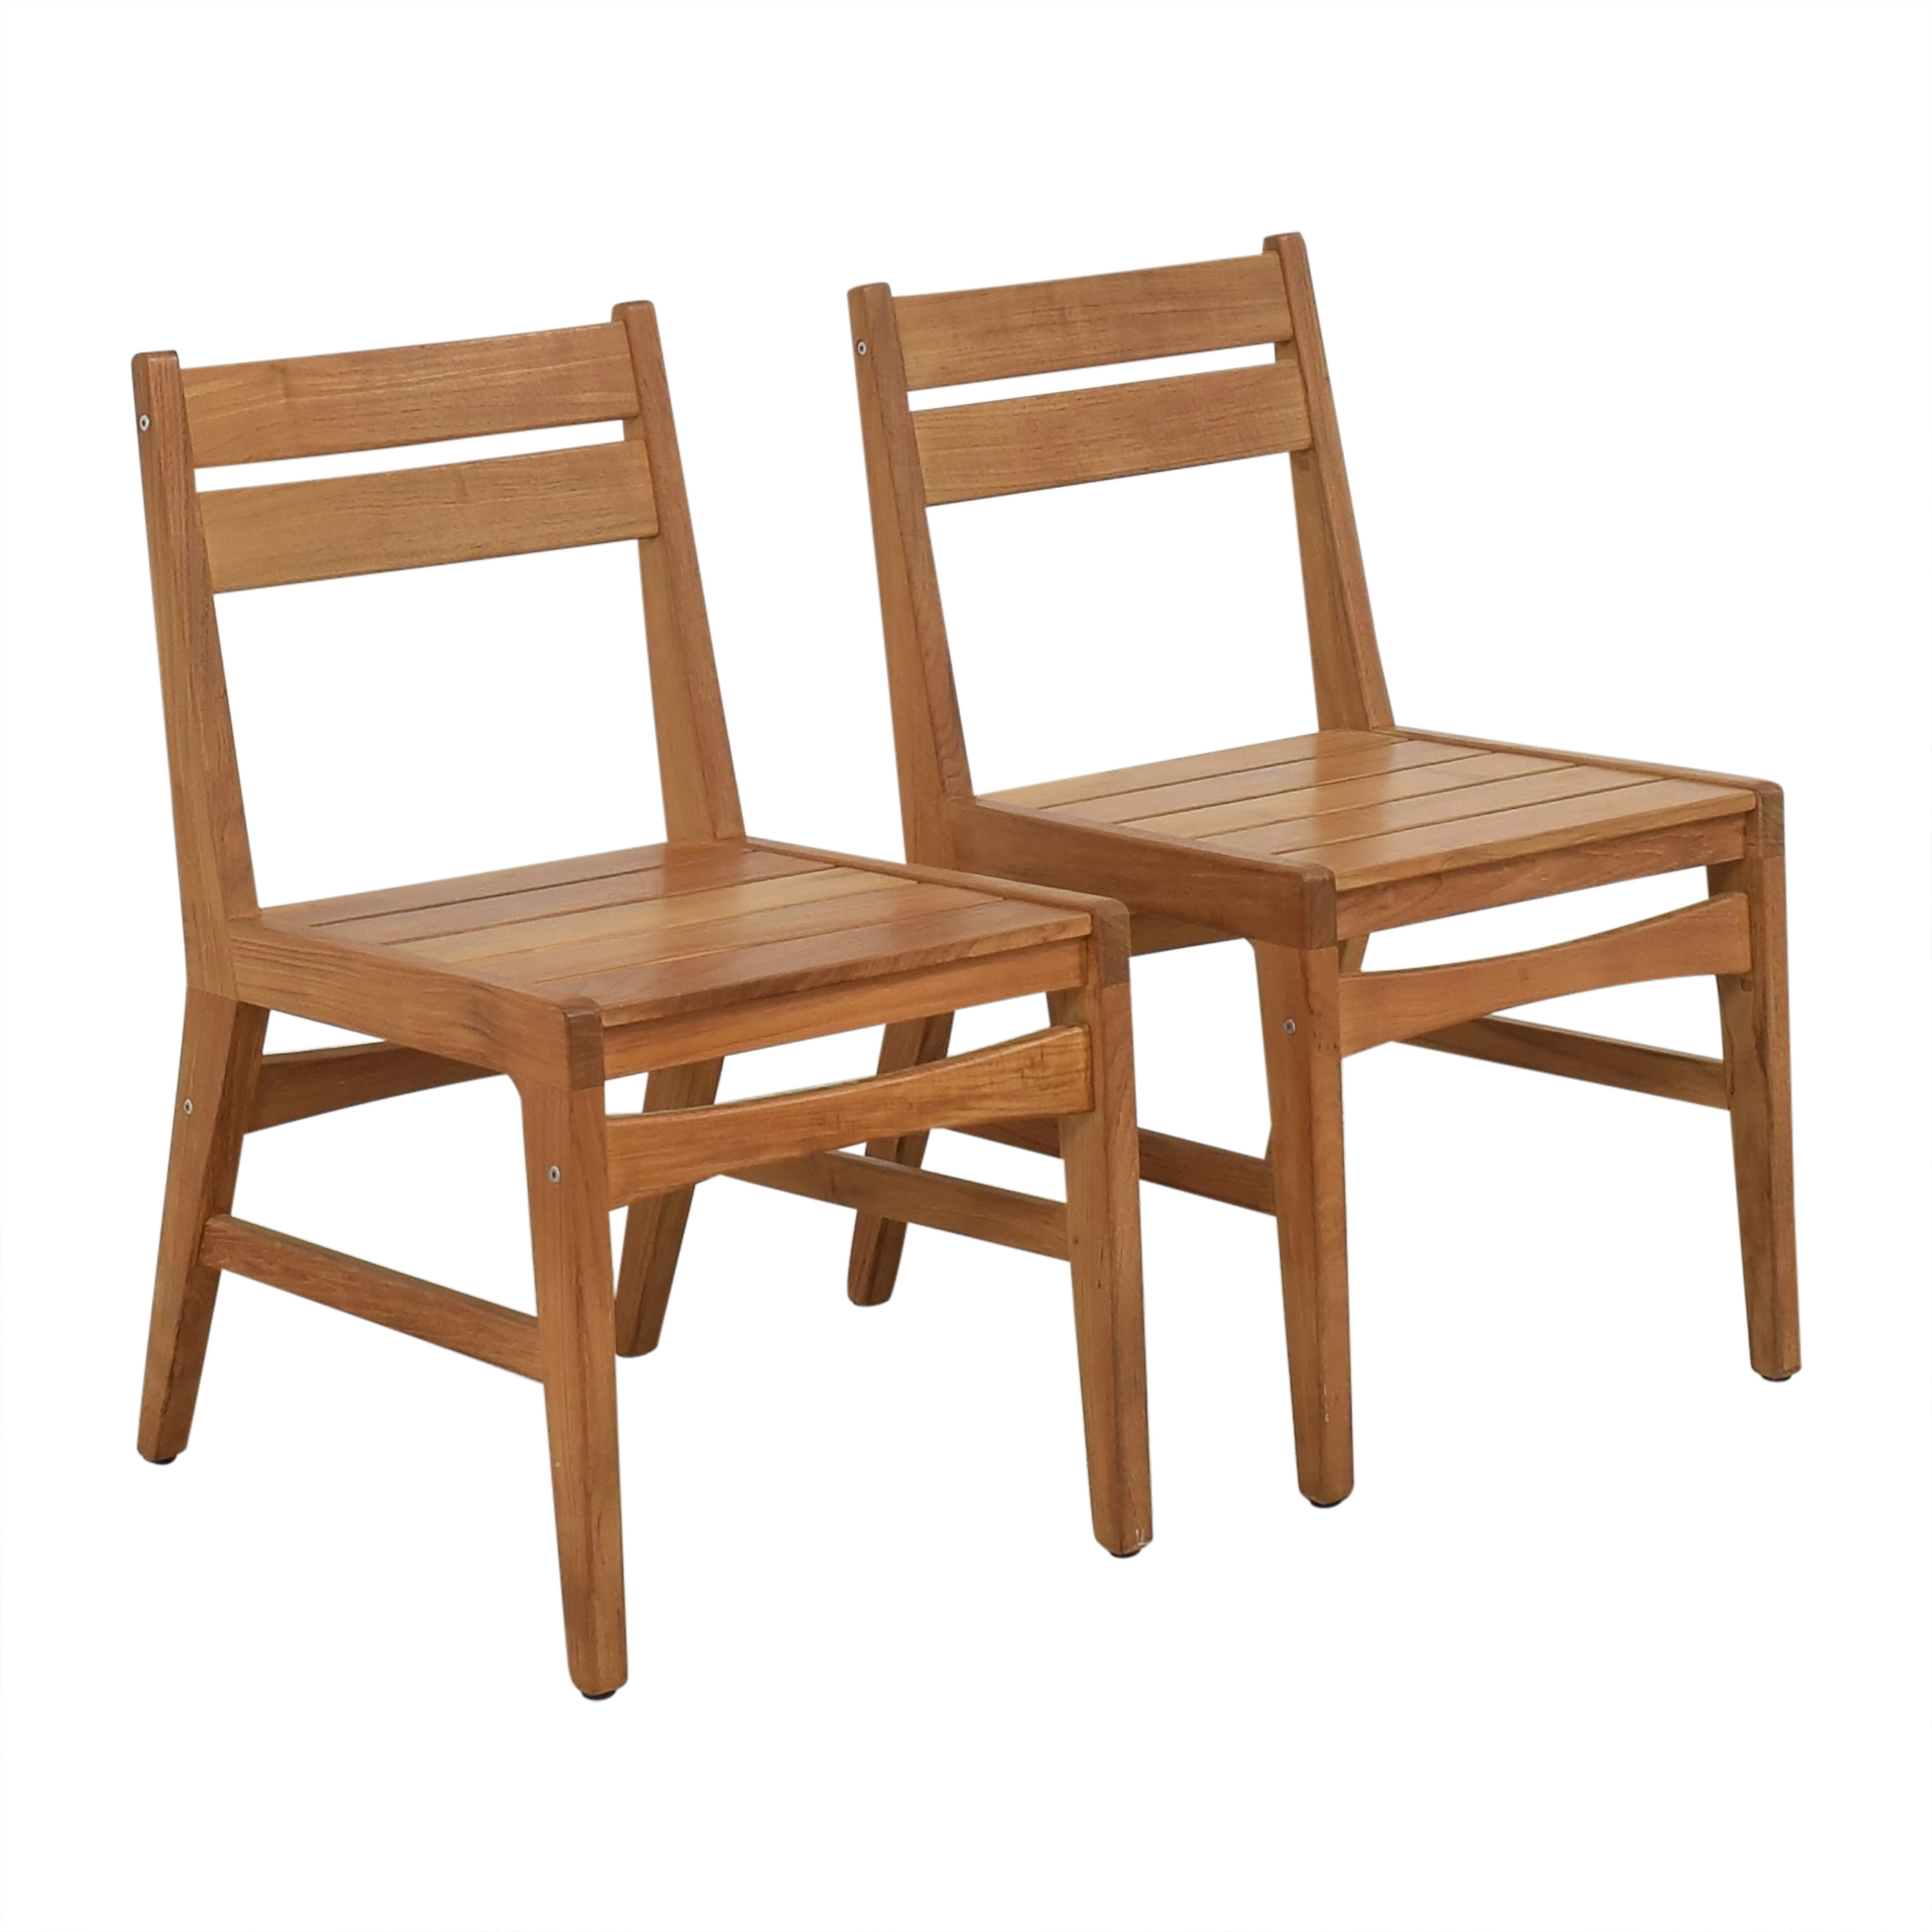 West Elm West Elm Mid-Century Outdoor Dining Chairs discount